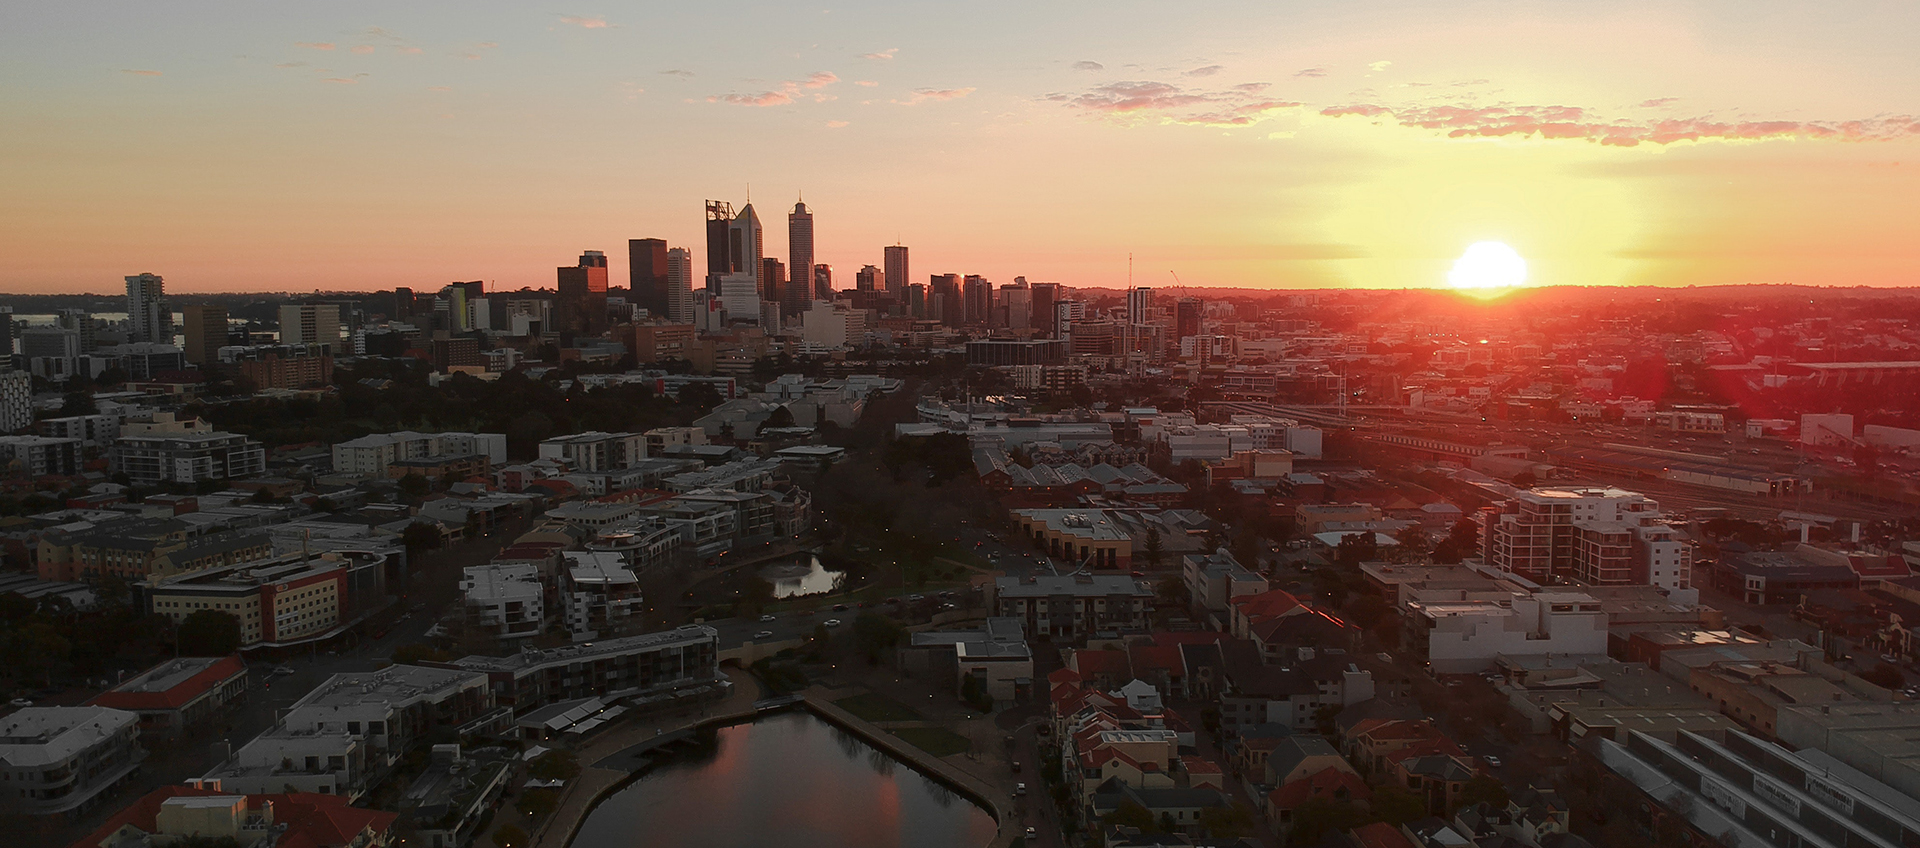 Image showing Perth city skyline